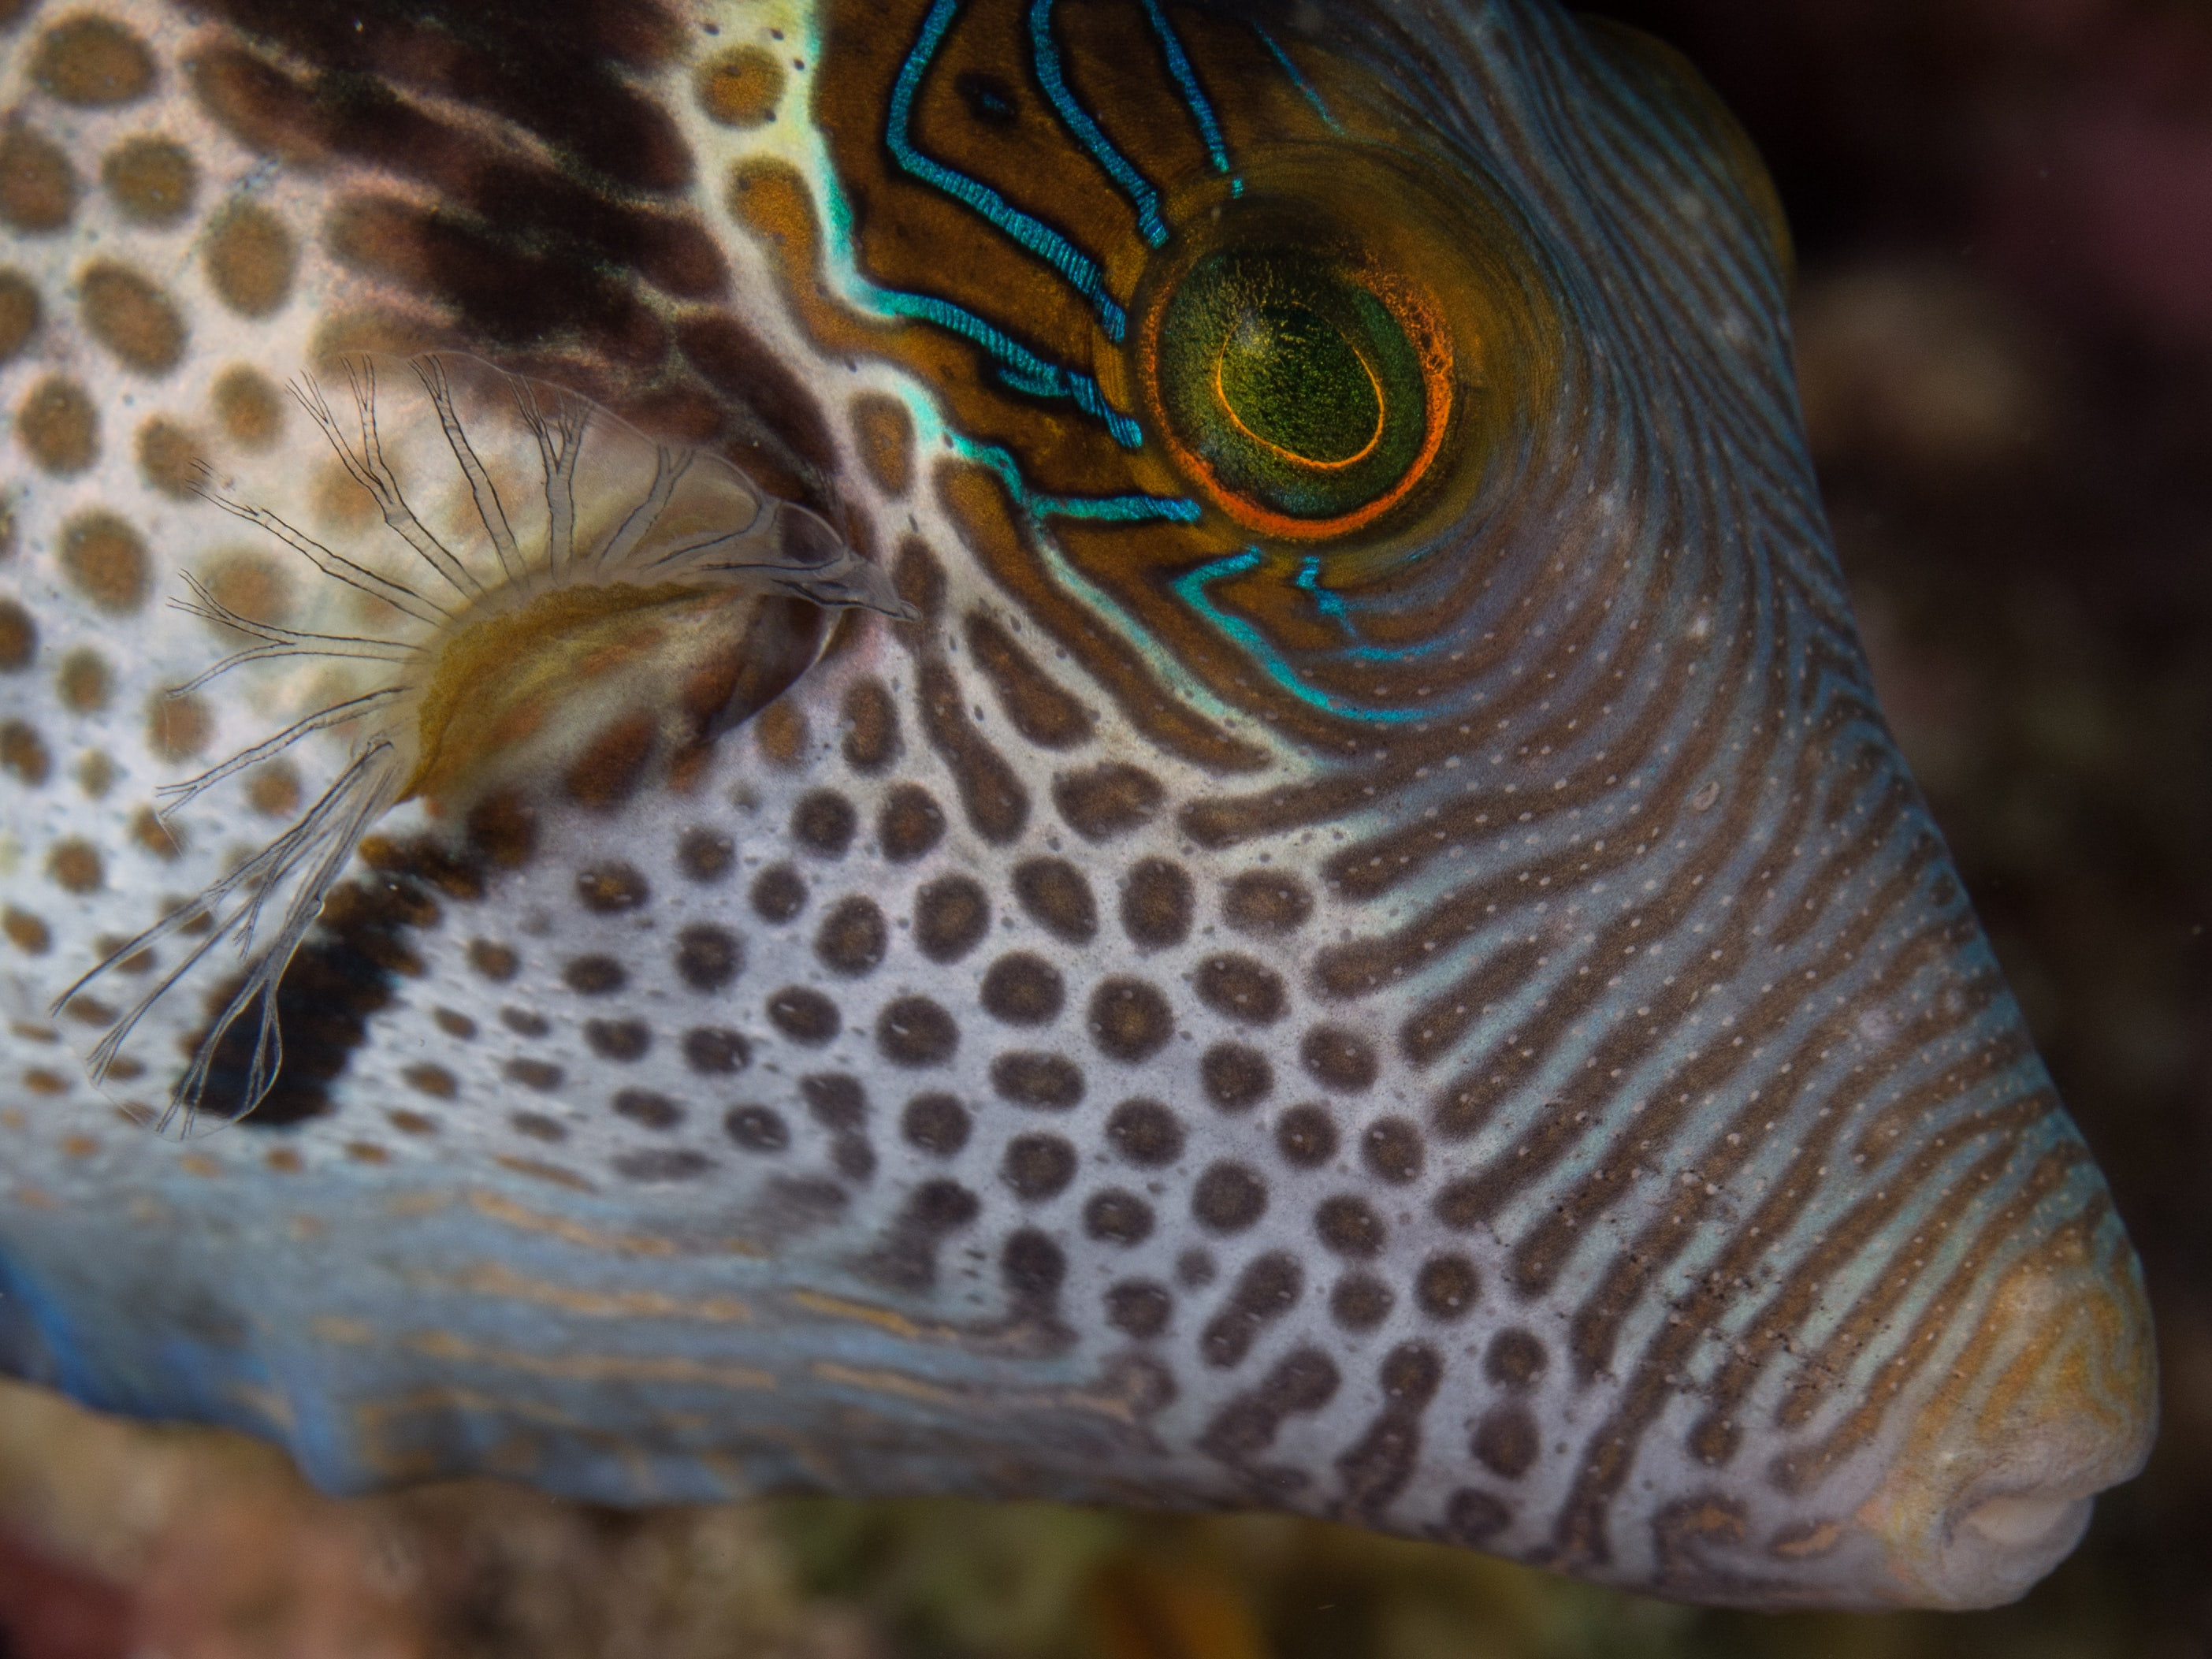 close-up photograph of multicolored fish